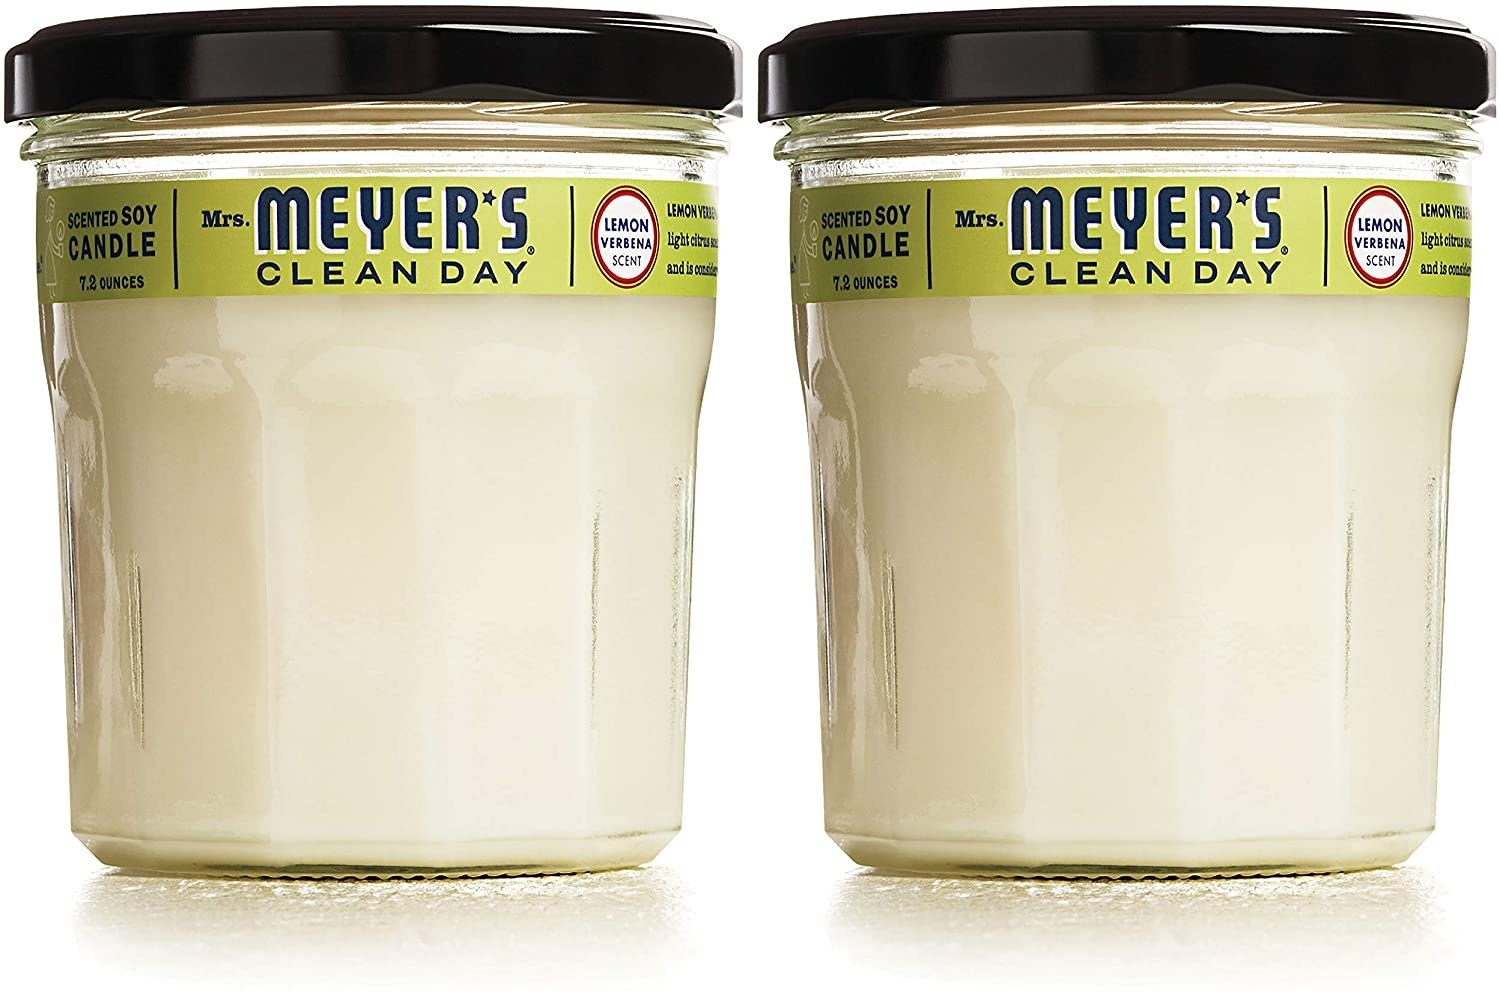 Two white Mrs. Meyer's Clean Day candles